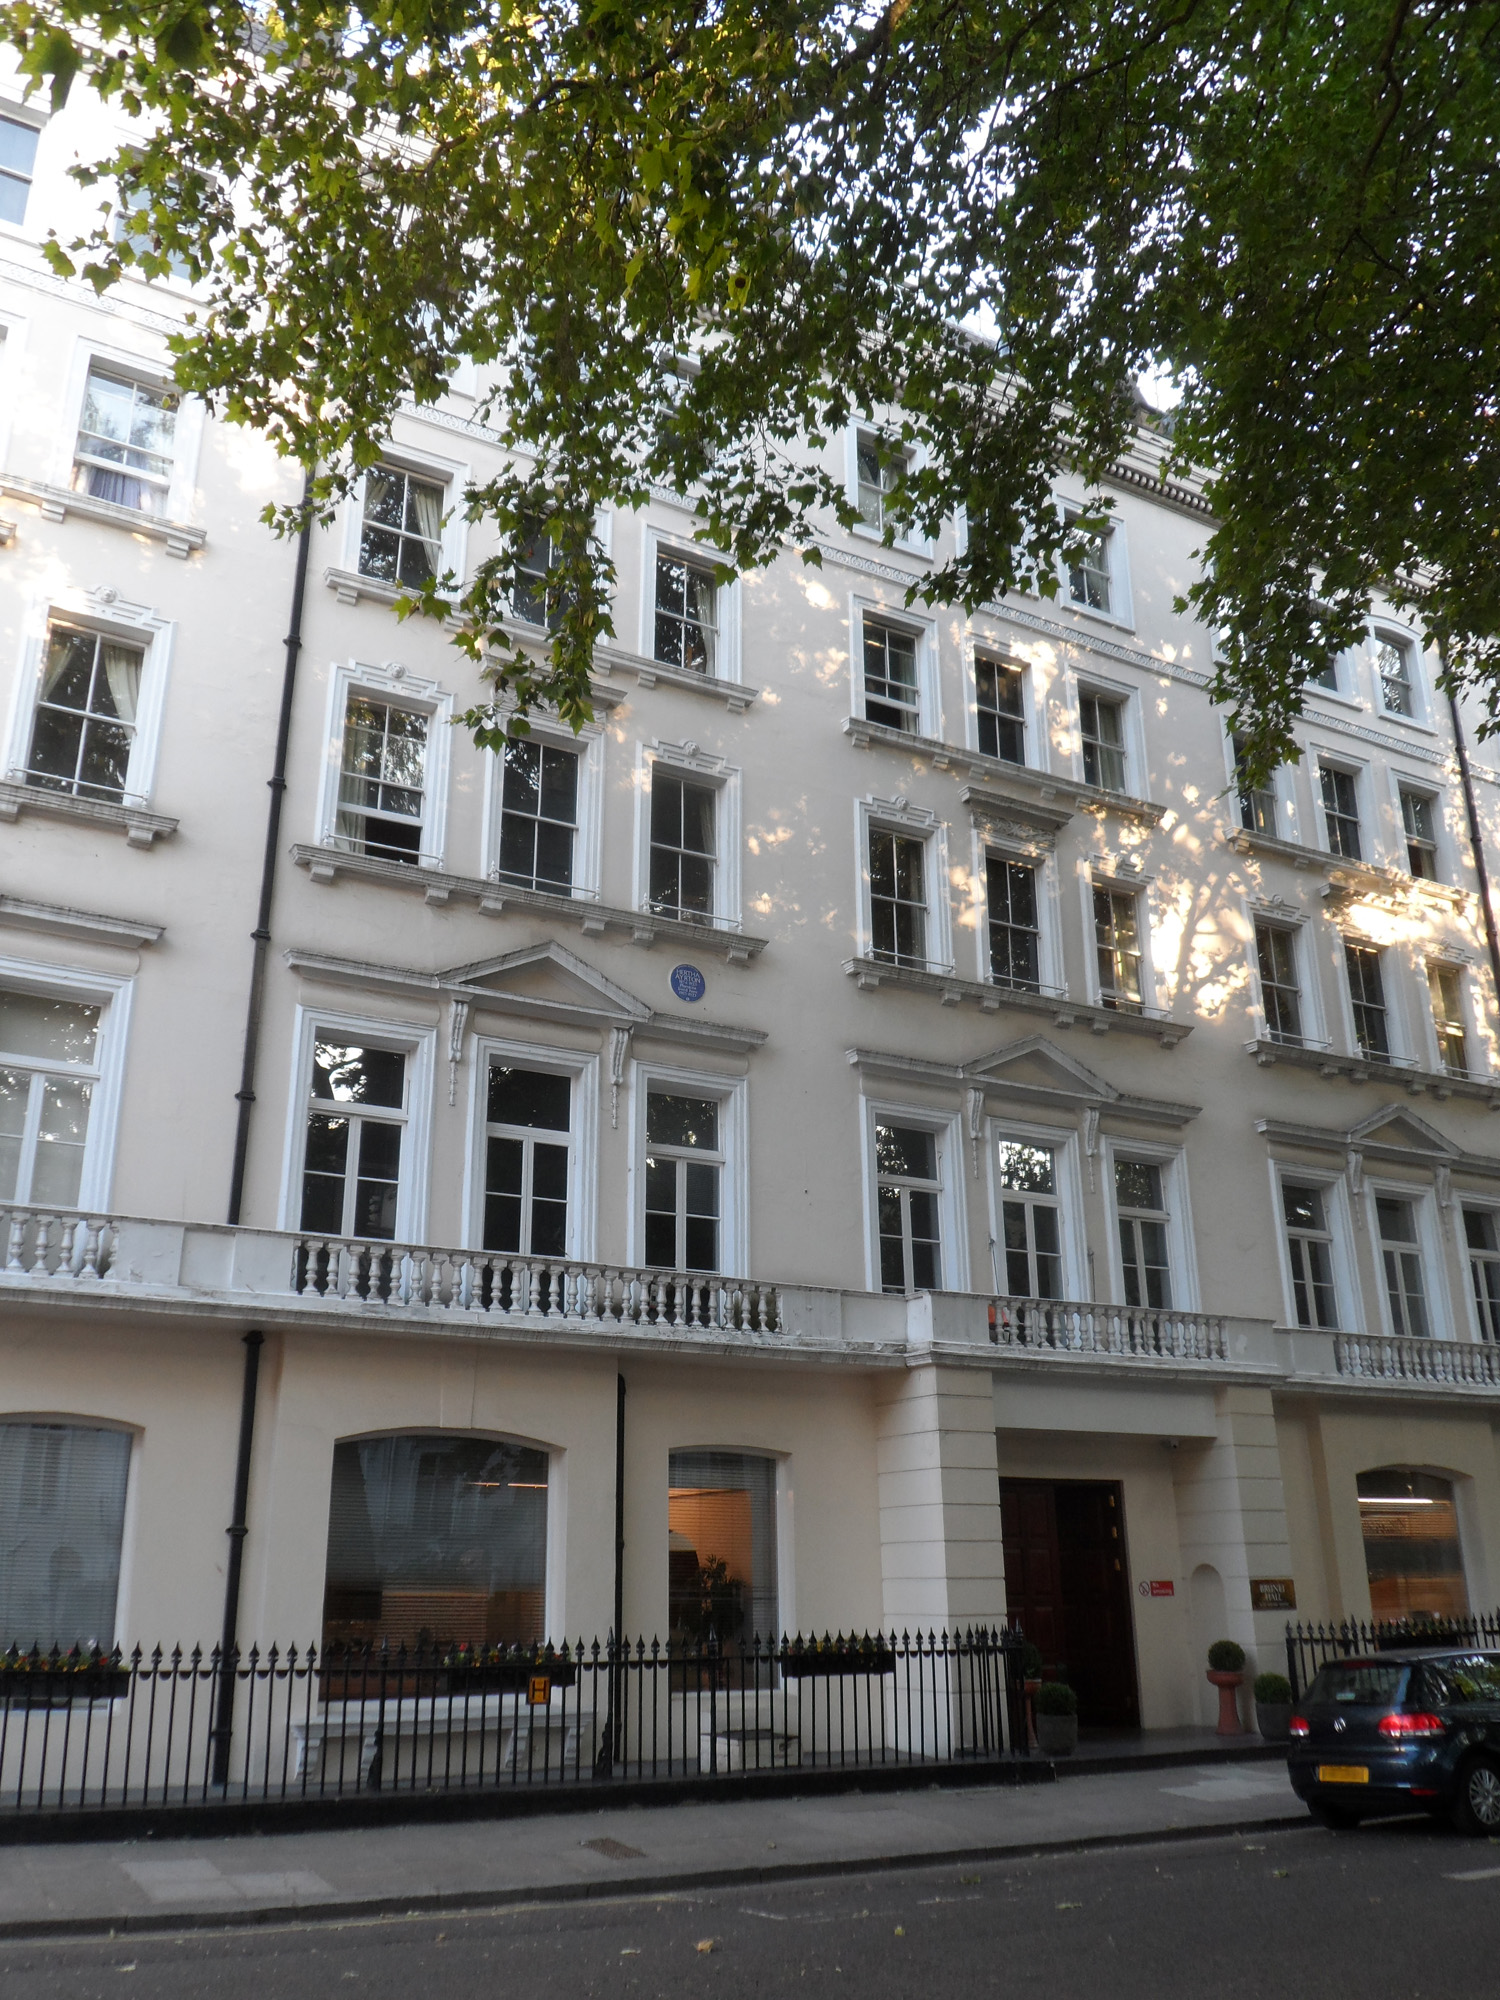 The home in London where Hertha Marks Ayrton lived. (Wikipedia Commons)